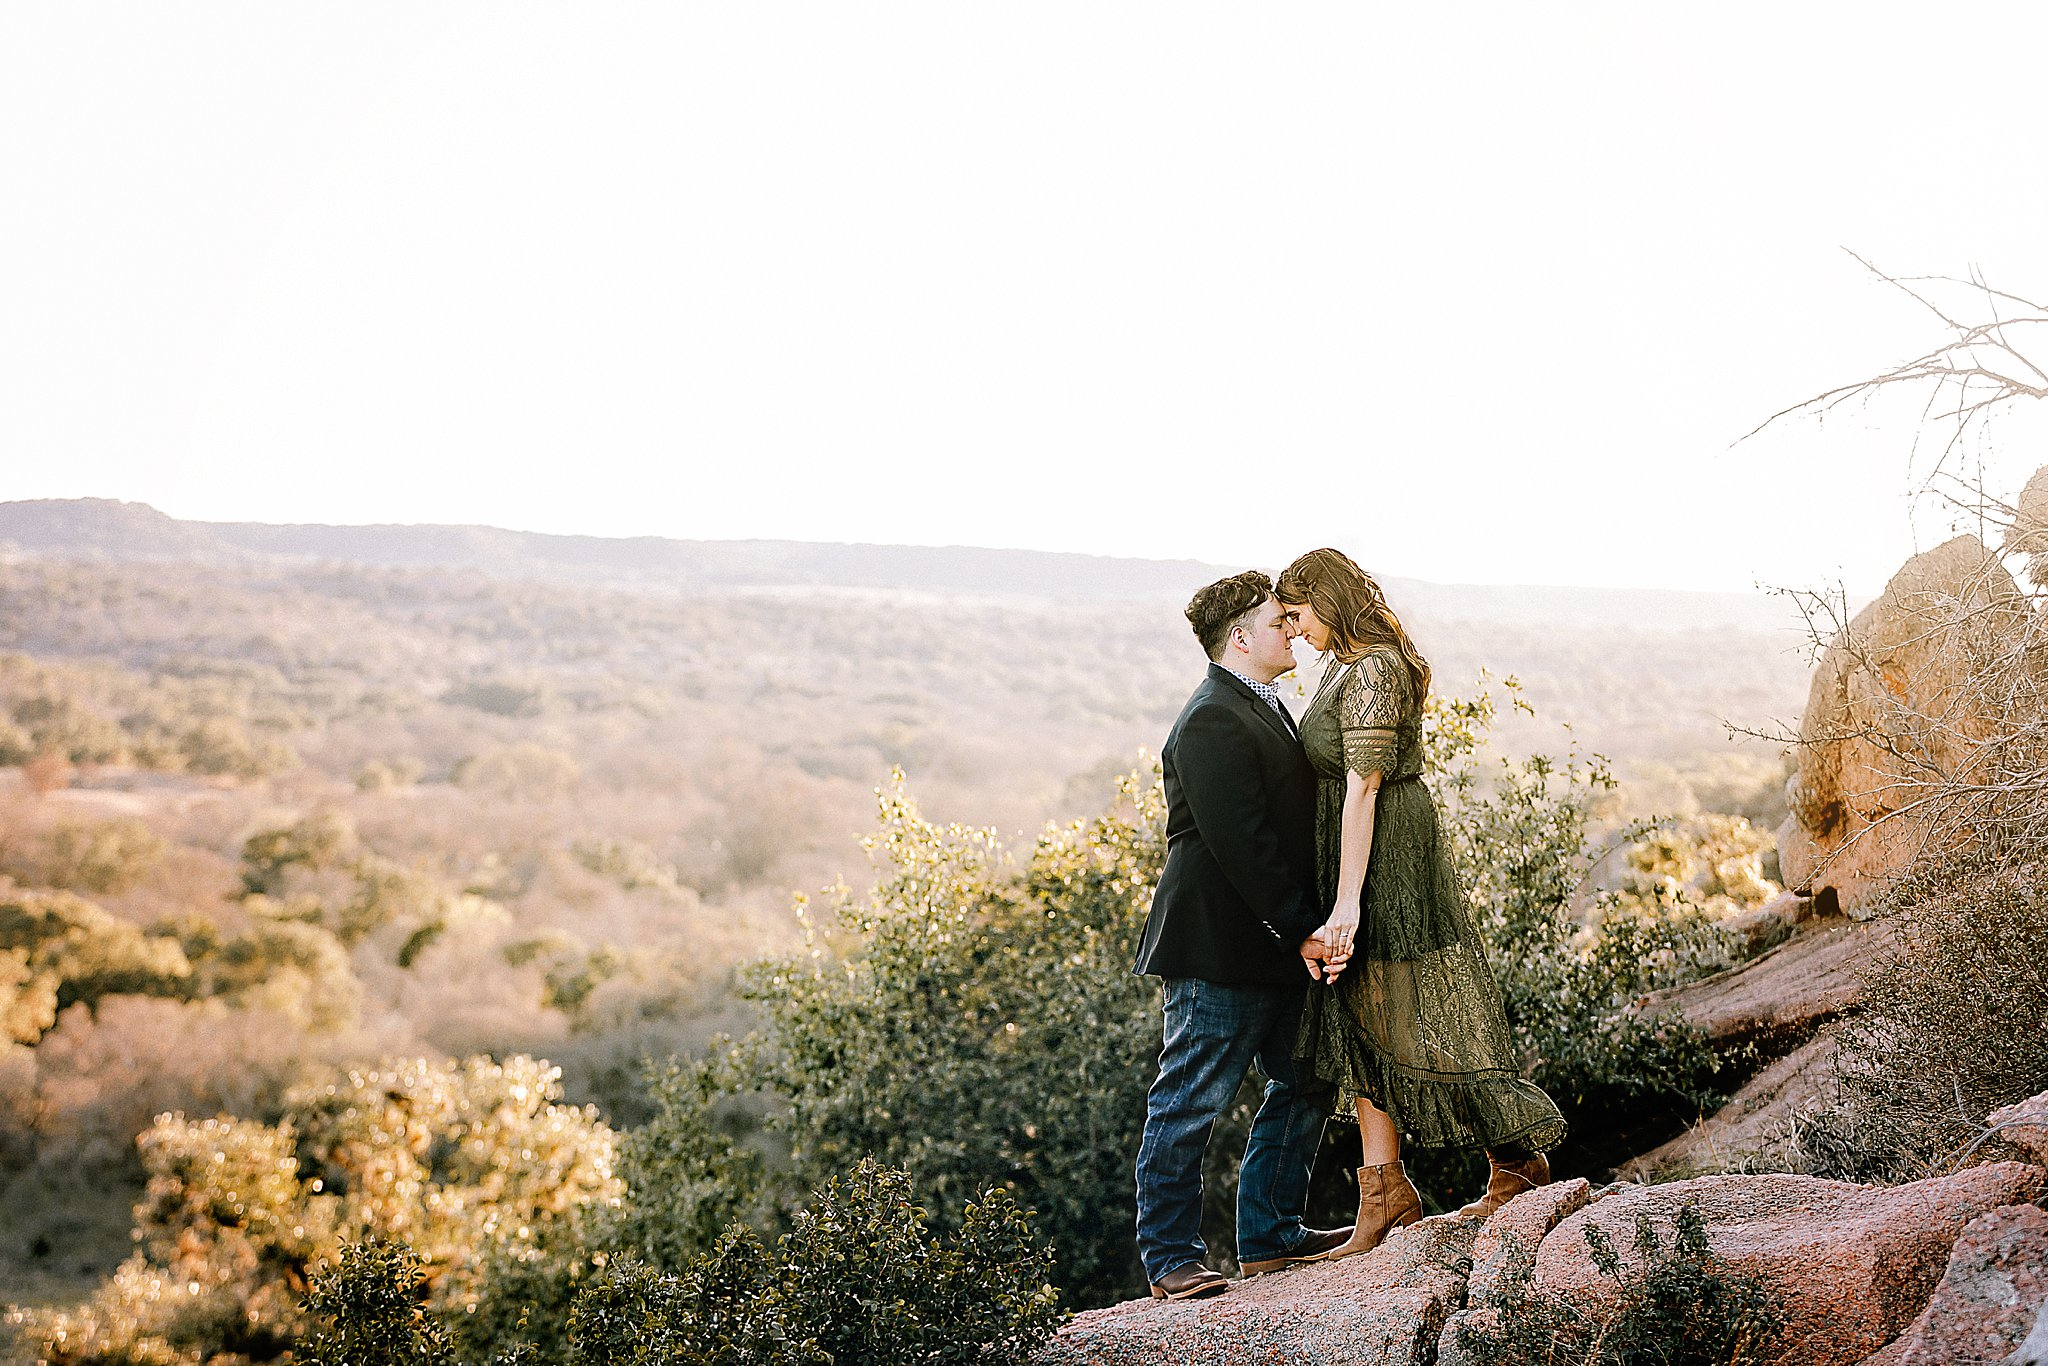 Carly-Barton-Photography-Fredericksburg-Texas-Engagement-Session-Enchanted-Rock-Photos_0001.jpg